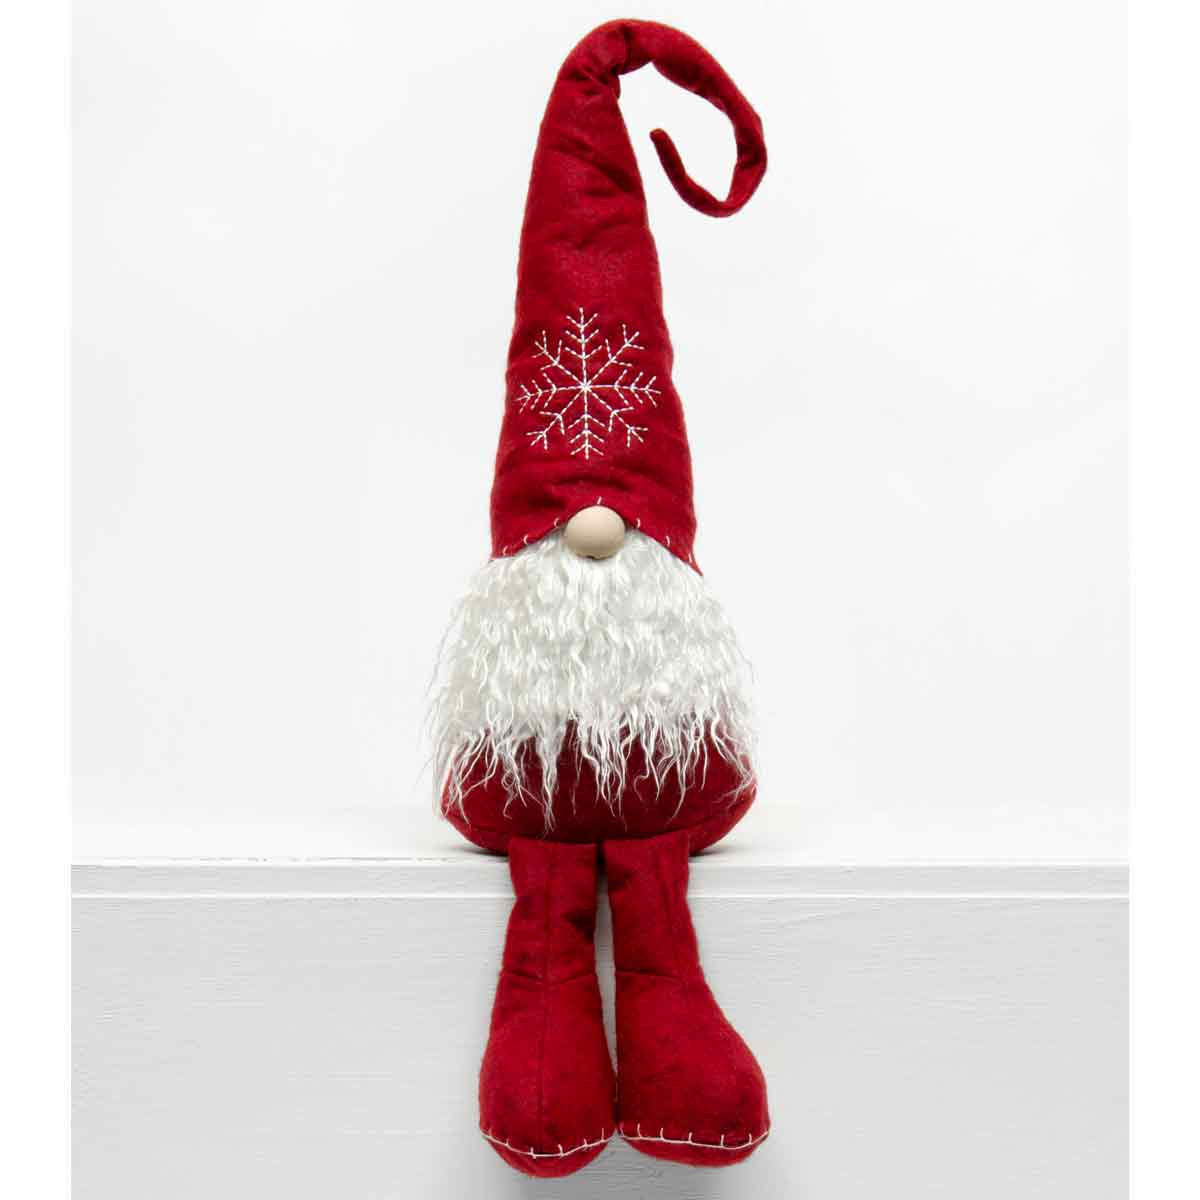 SCHNITZEL GNOME WITH SNOWFLAKE HAT, WOOD NOSE, CURLY BEARD AND B